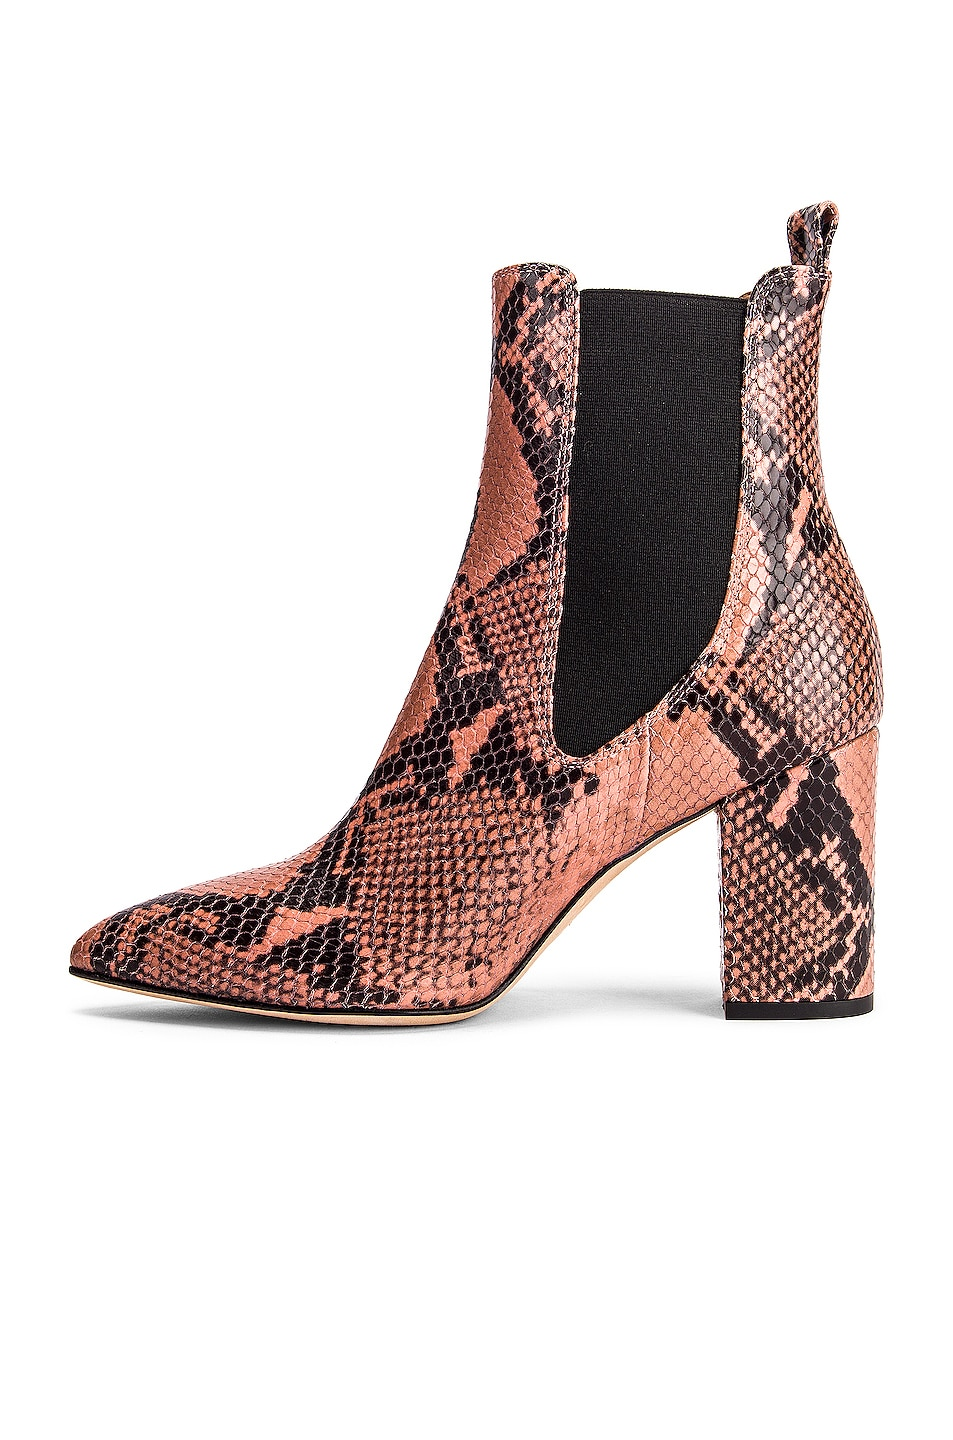 Image 5 of Paris Texas Python Print Ankle Boot in Blush